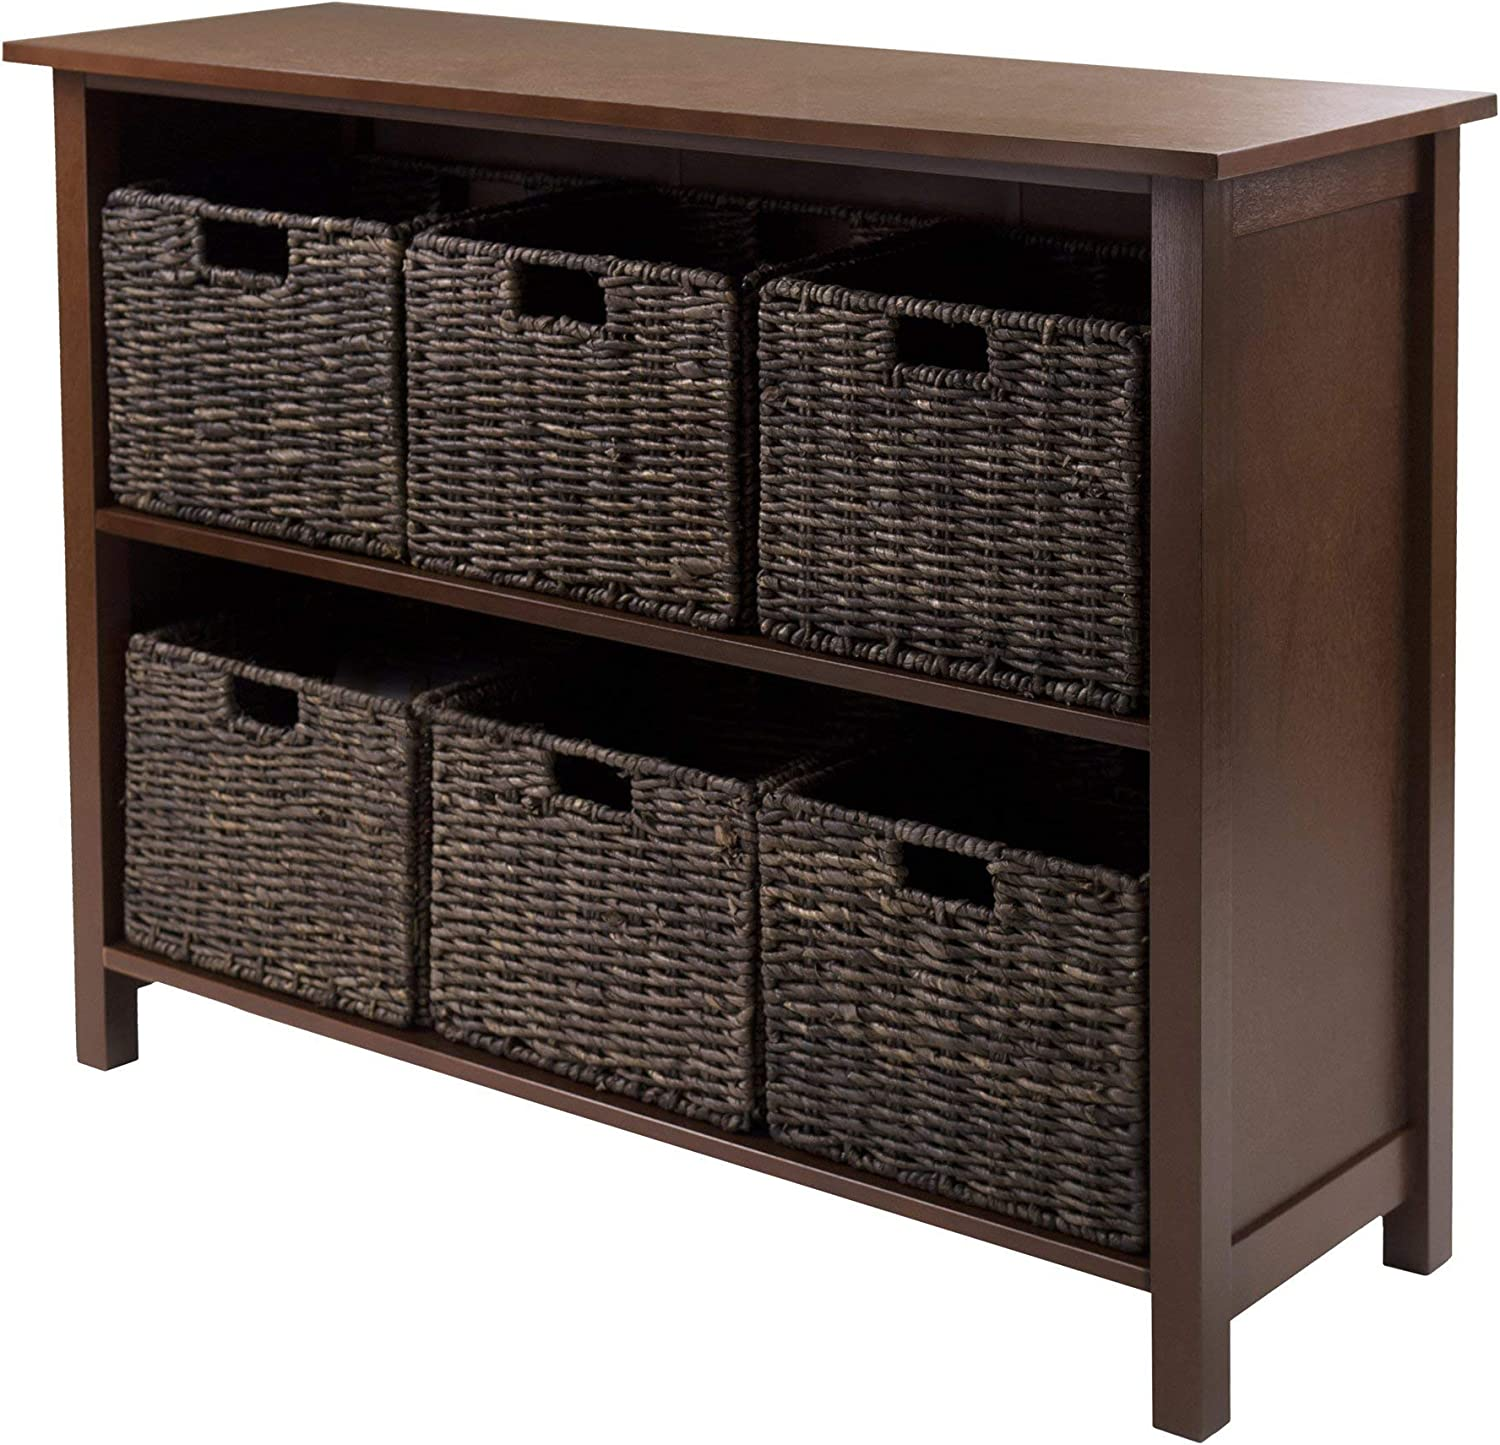 Winsome Granville 2-Section 7-Piece Storage Shelf Wide with 6-Foldable Baskets